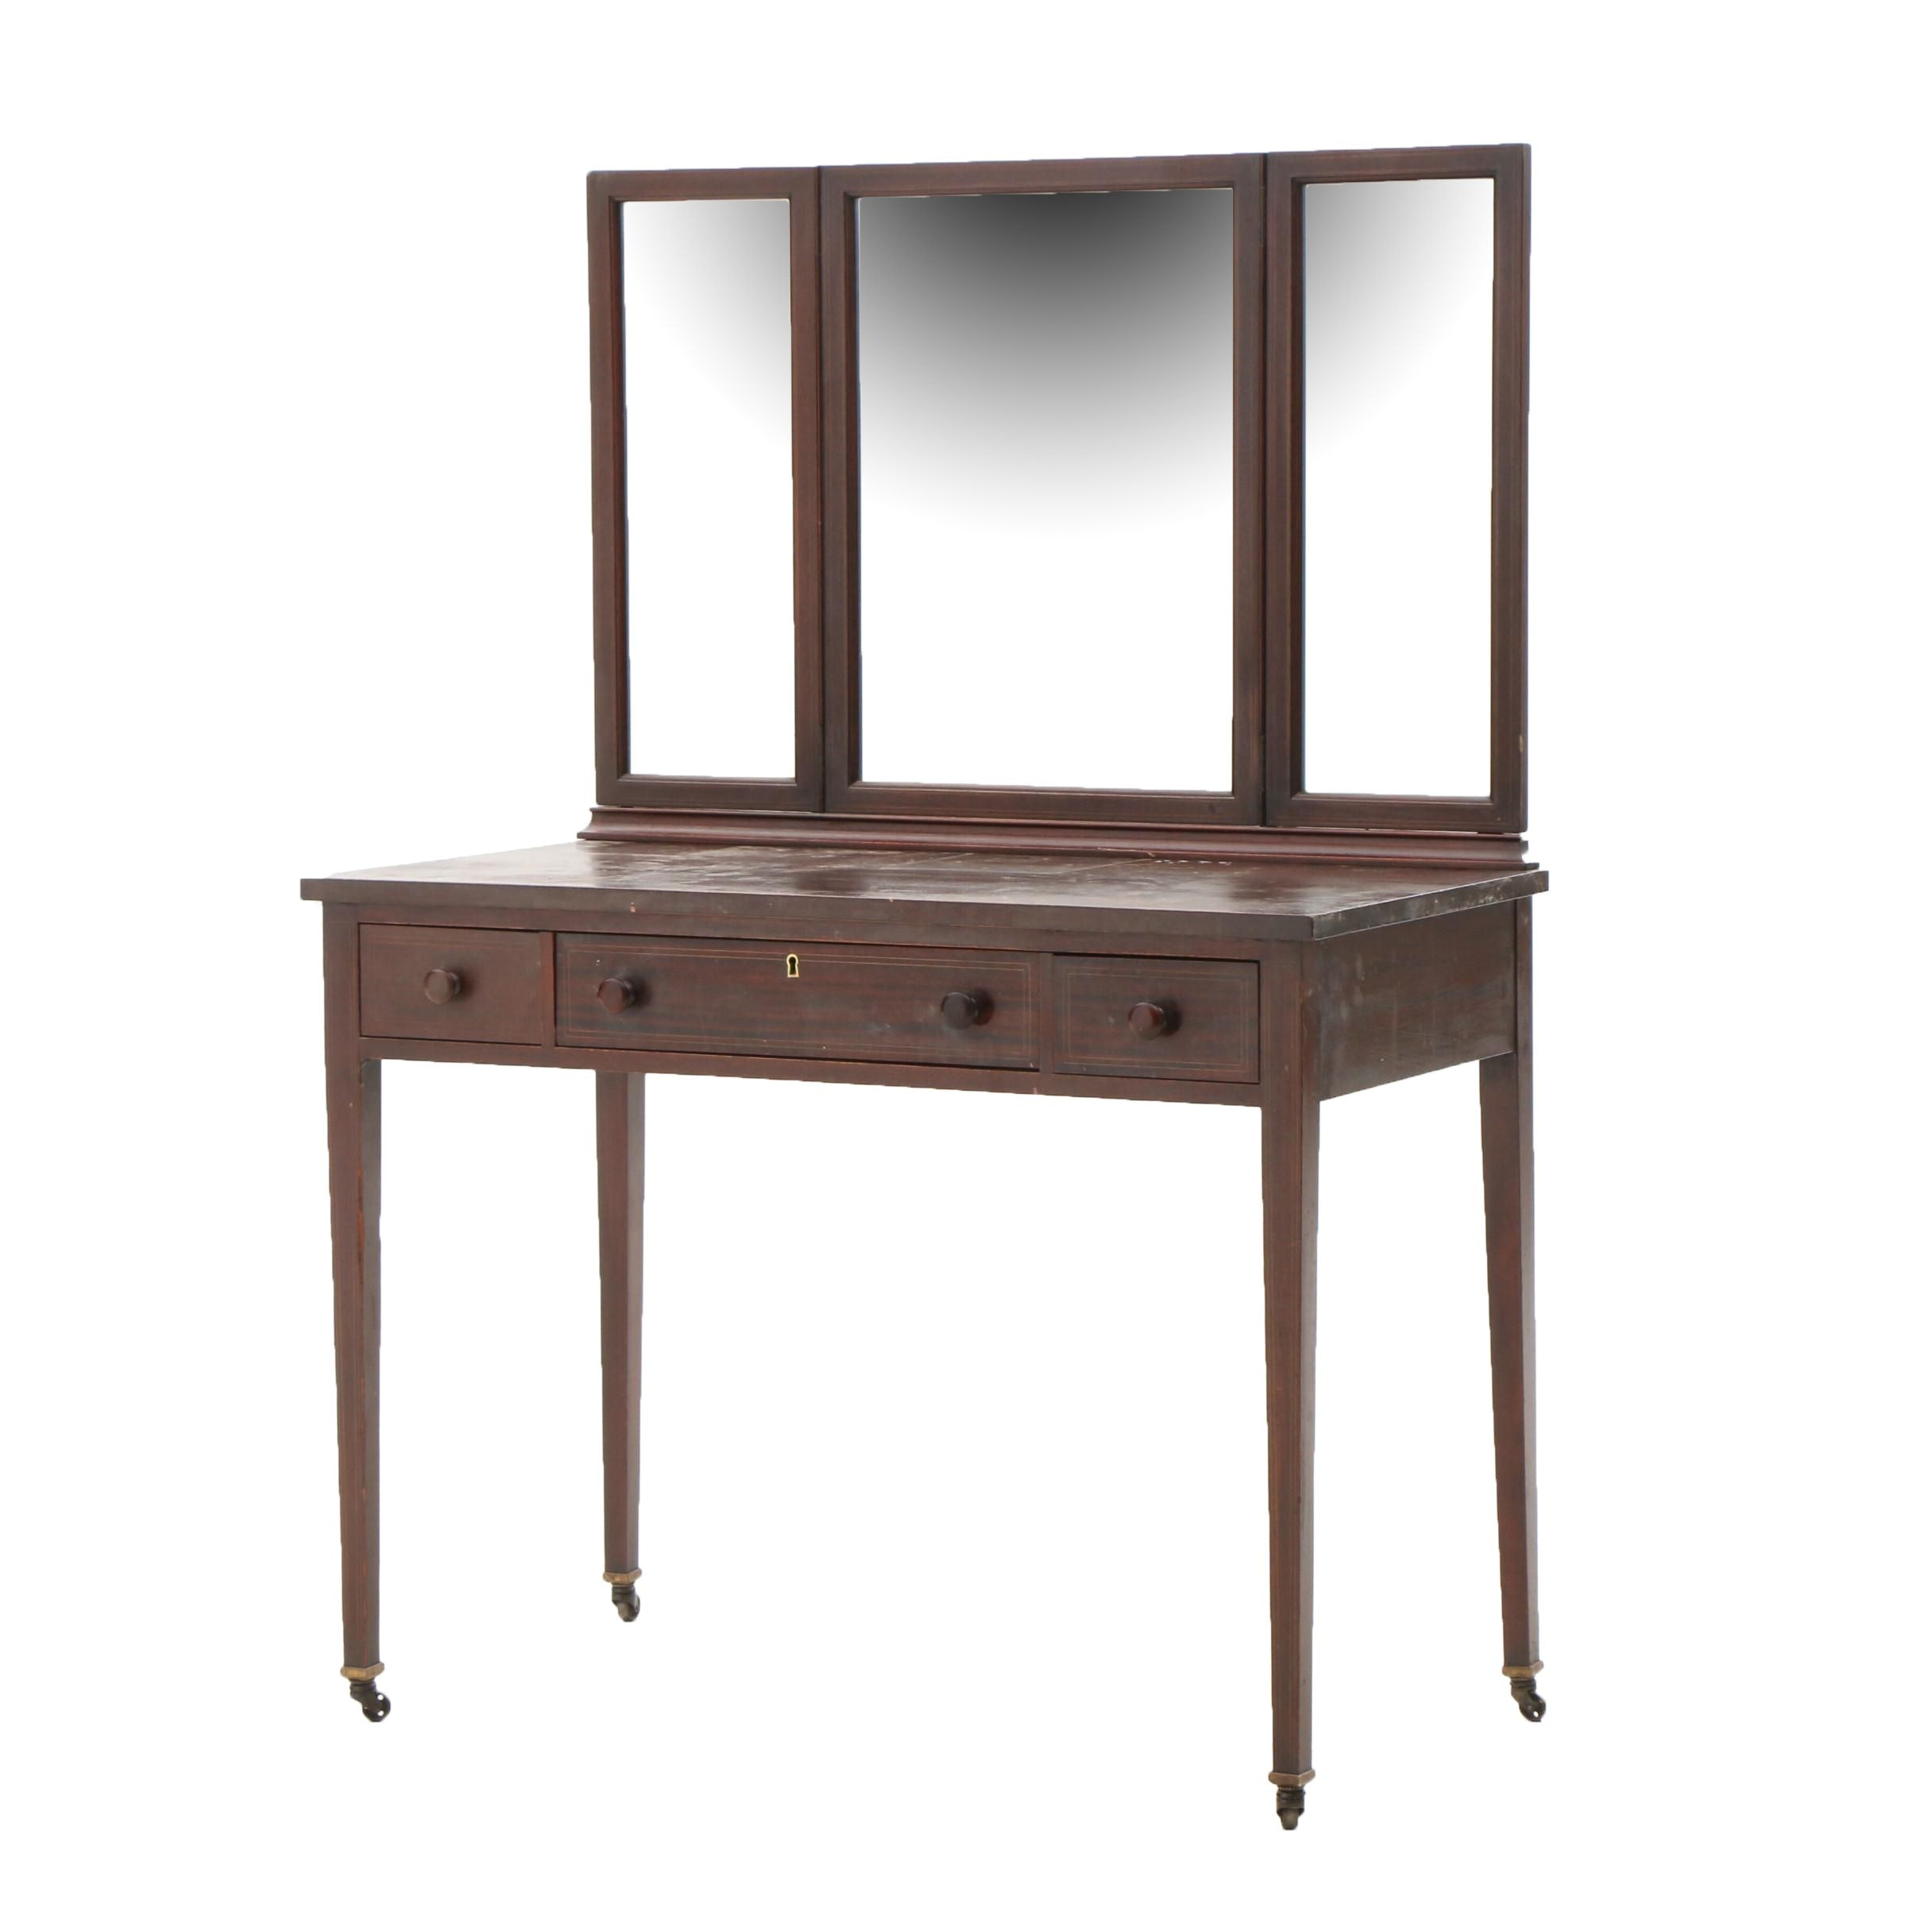 Hepplewhite Style Mahogany and Lacquer Finish Vanity Table